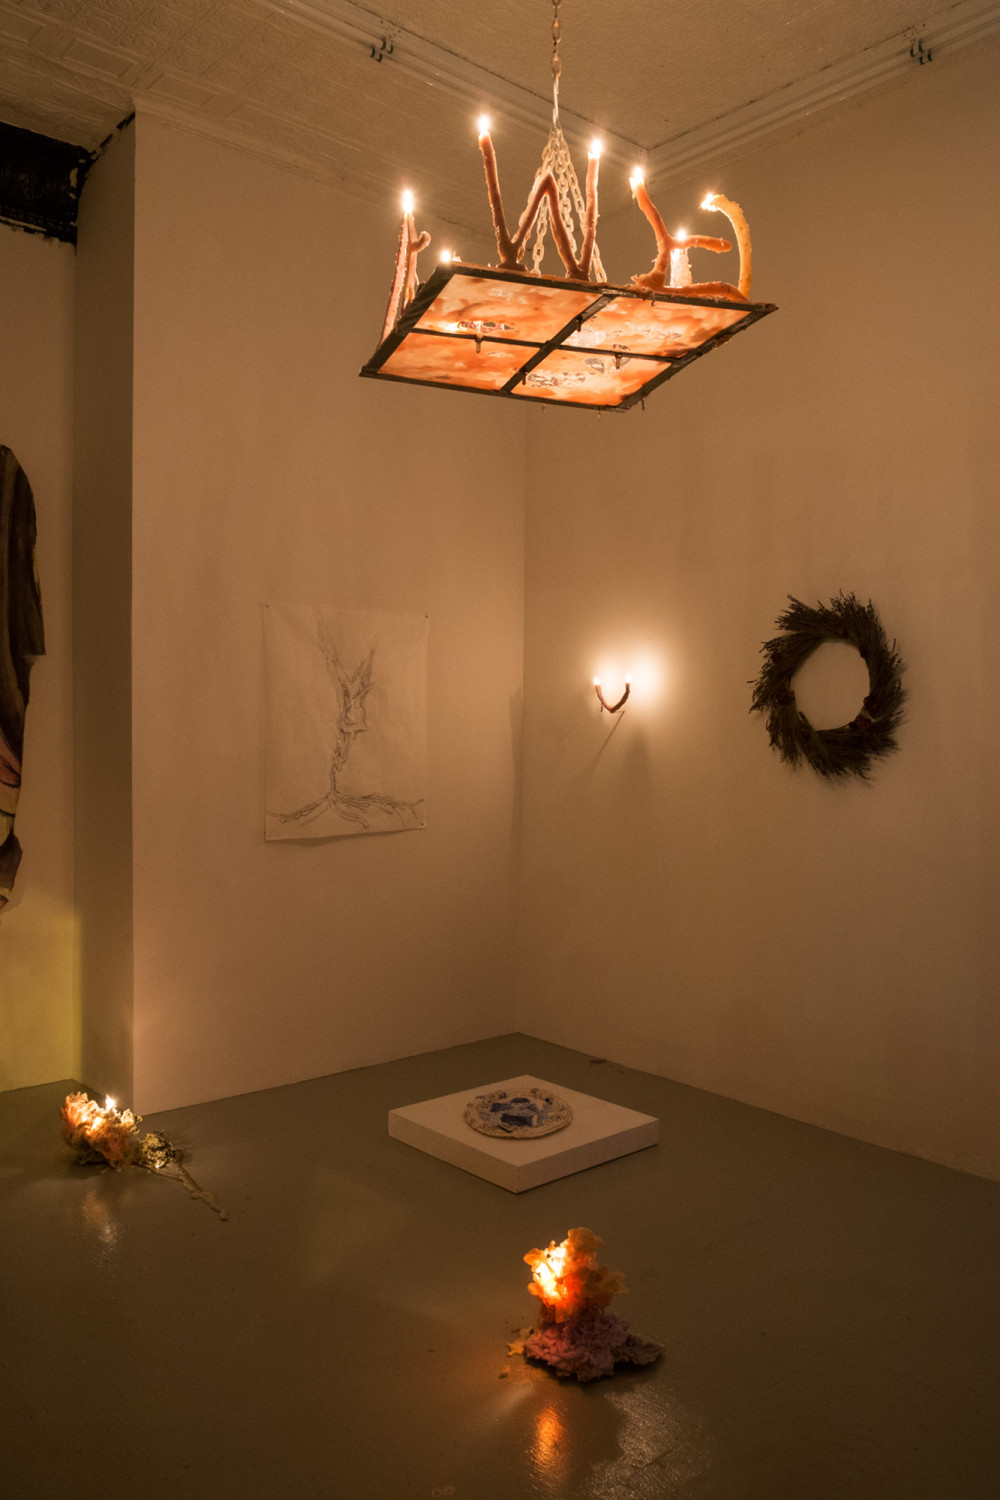 Gest's Candle, 2016 Installation view